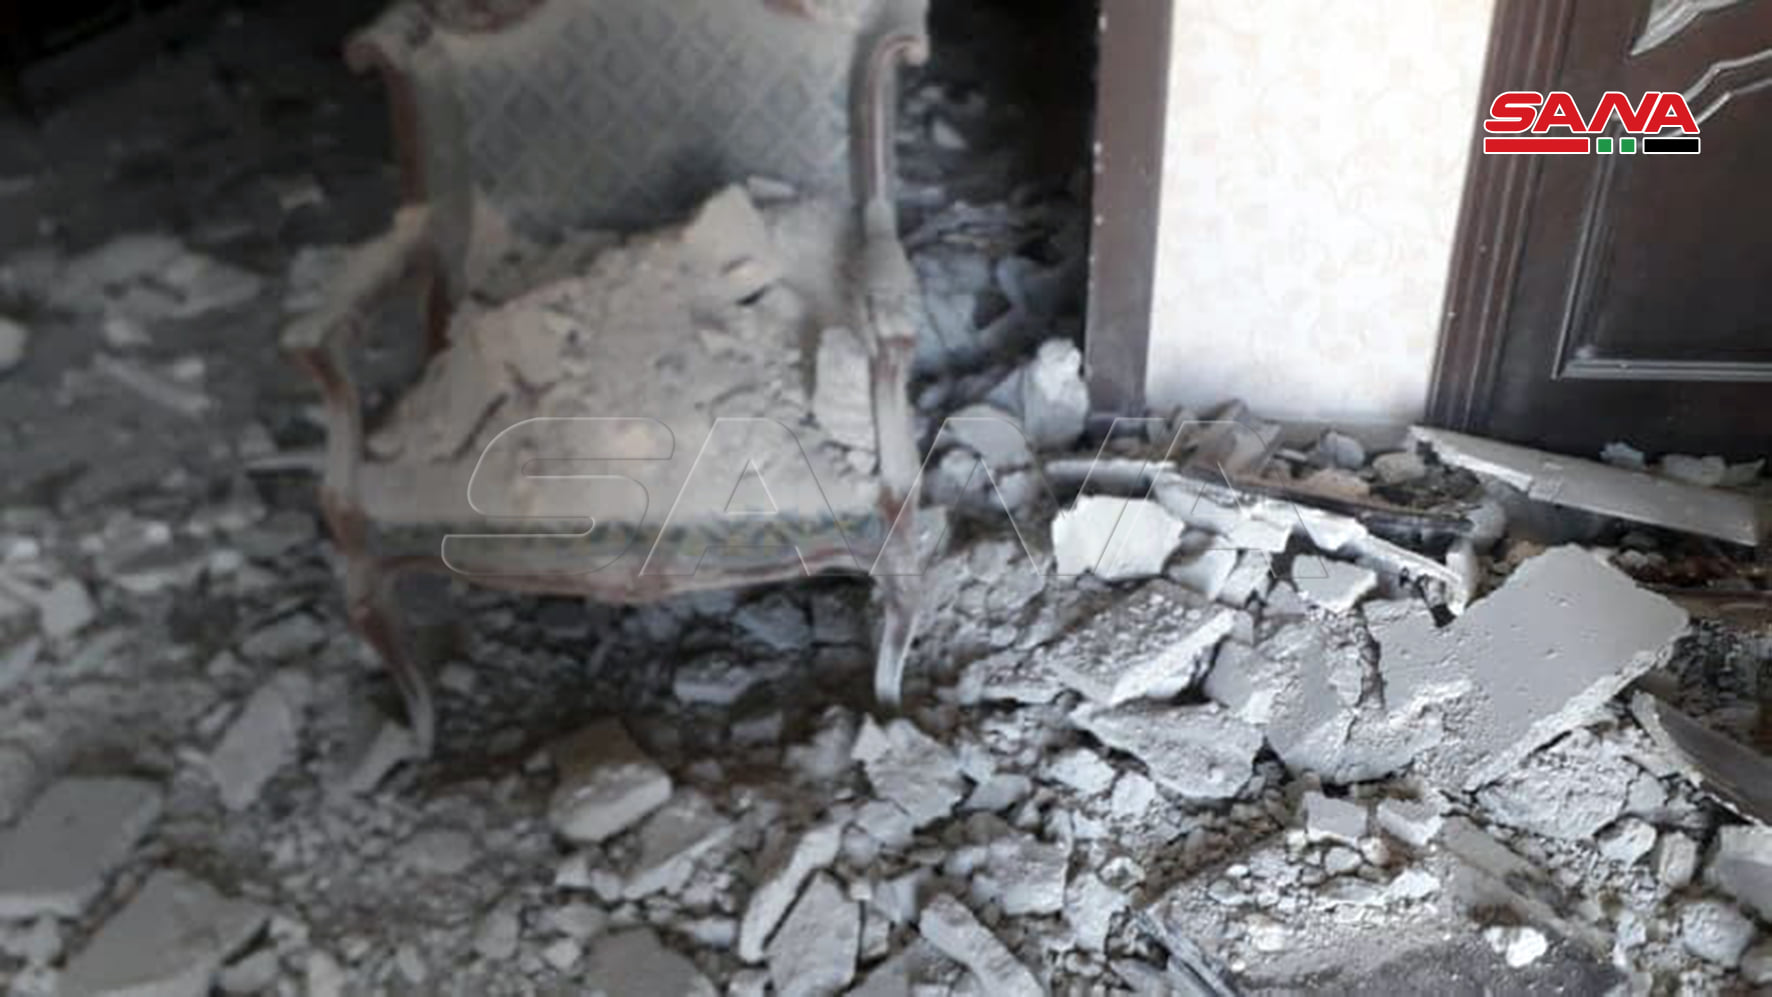 Militants Shelled Aleppo City In Blatant Violation Of Greater Idlib Ceasefire (Photos)